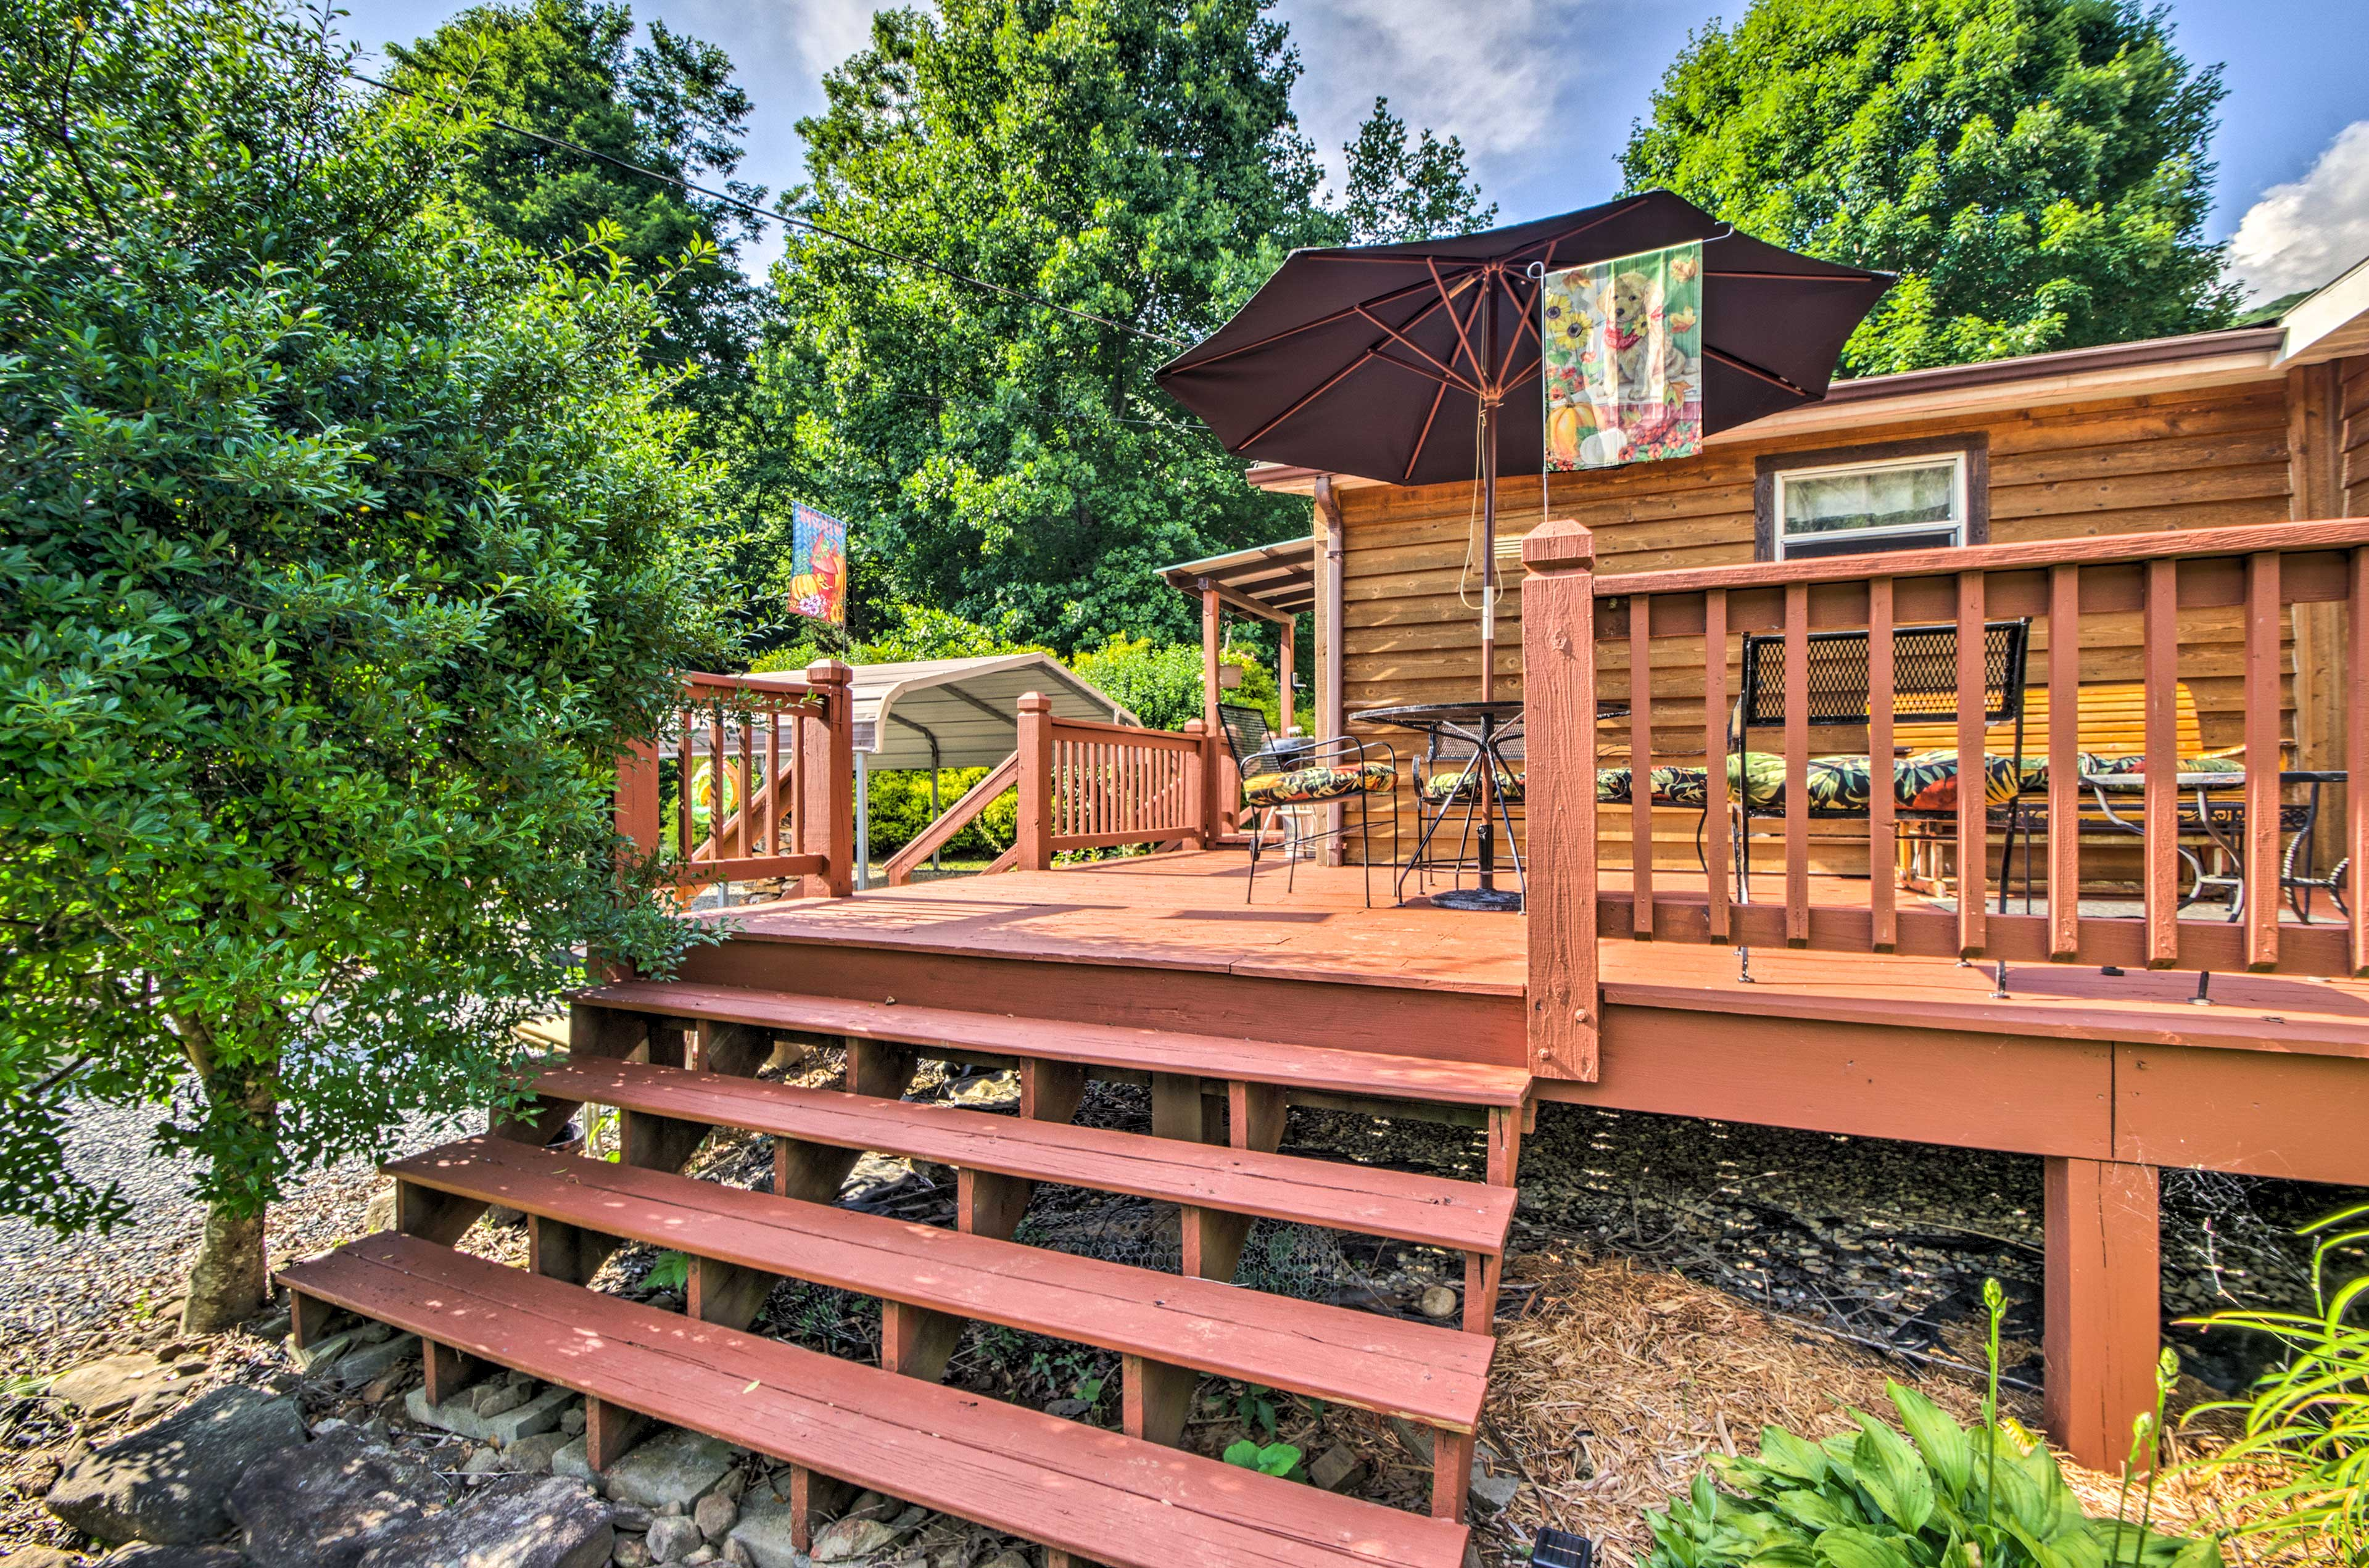 The deck offers a quite space to enjoy the outdoors.